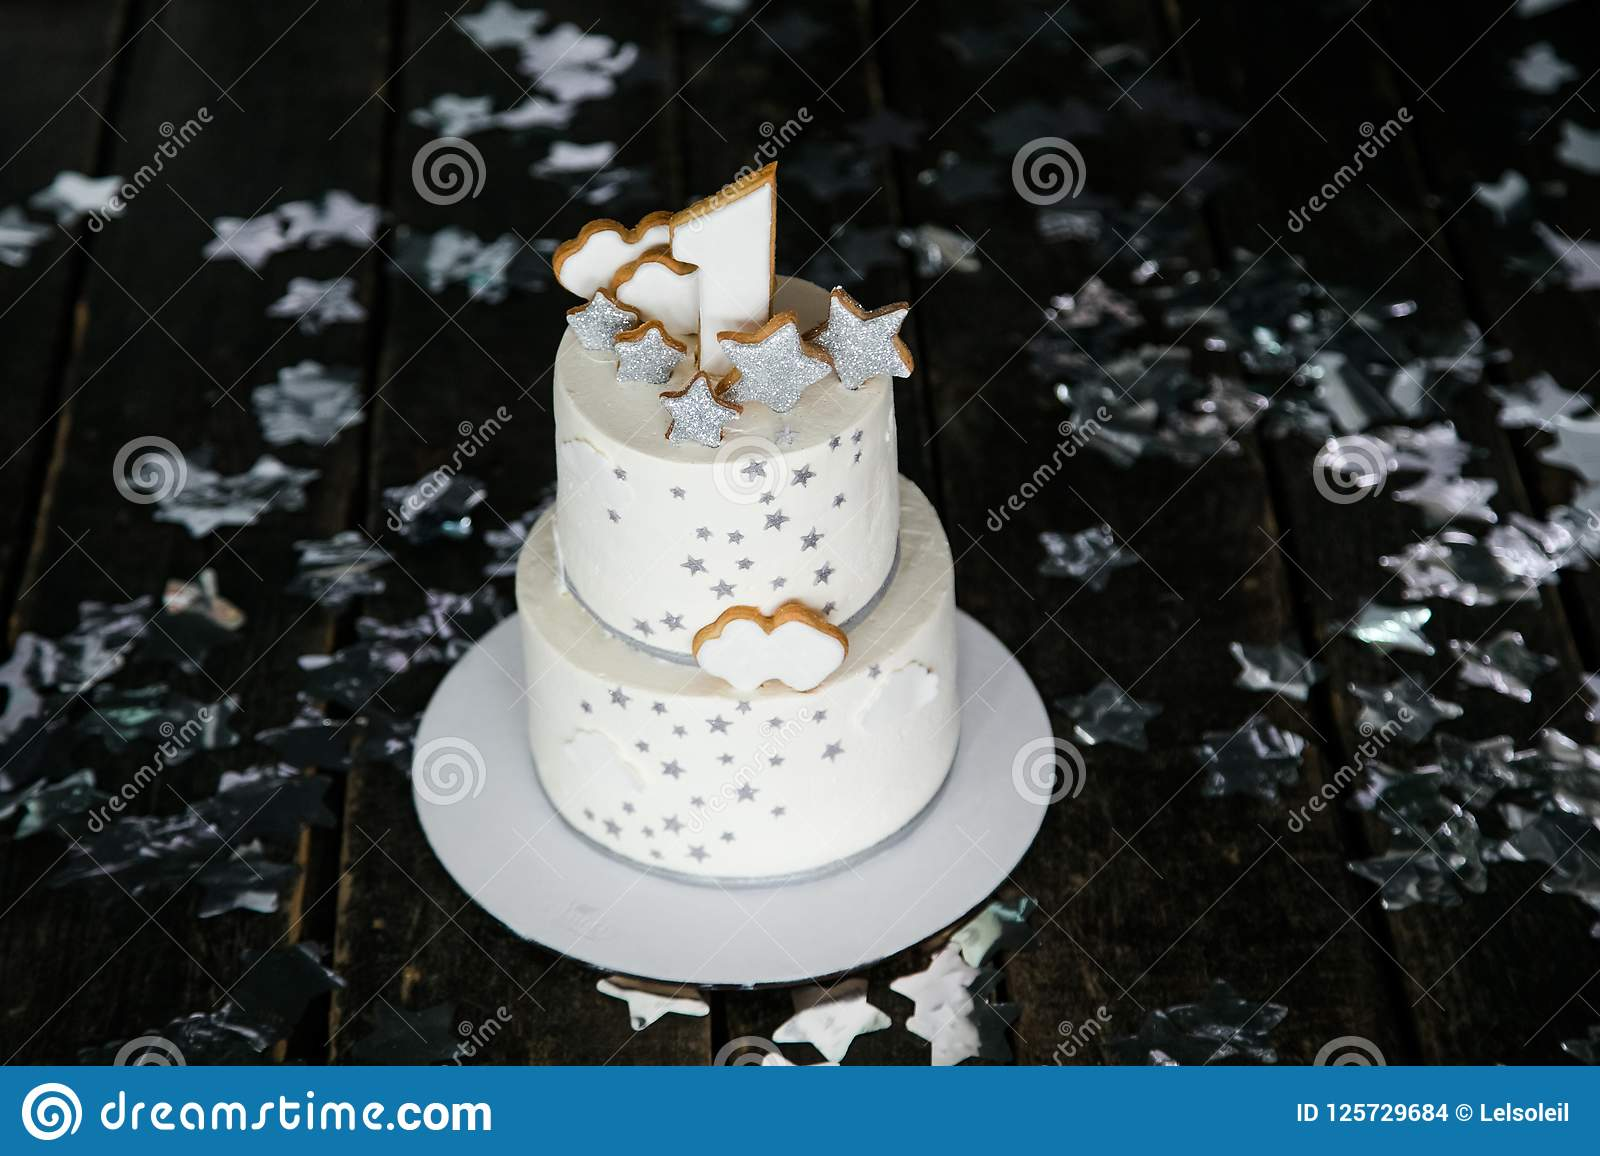 First Birthday White Cake With Stars And One Candle For Little Baby Boy Decorations Smash Black Background